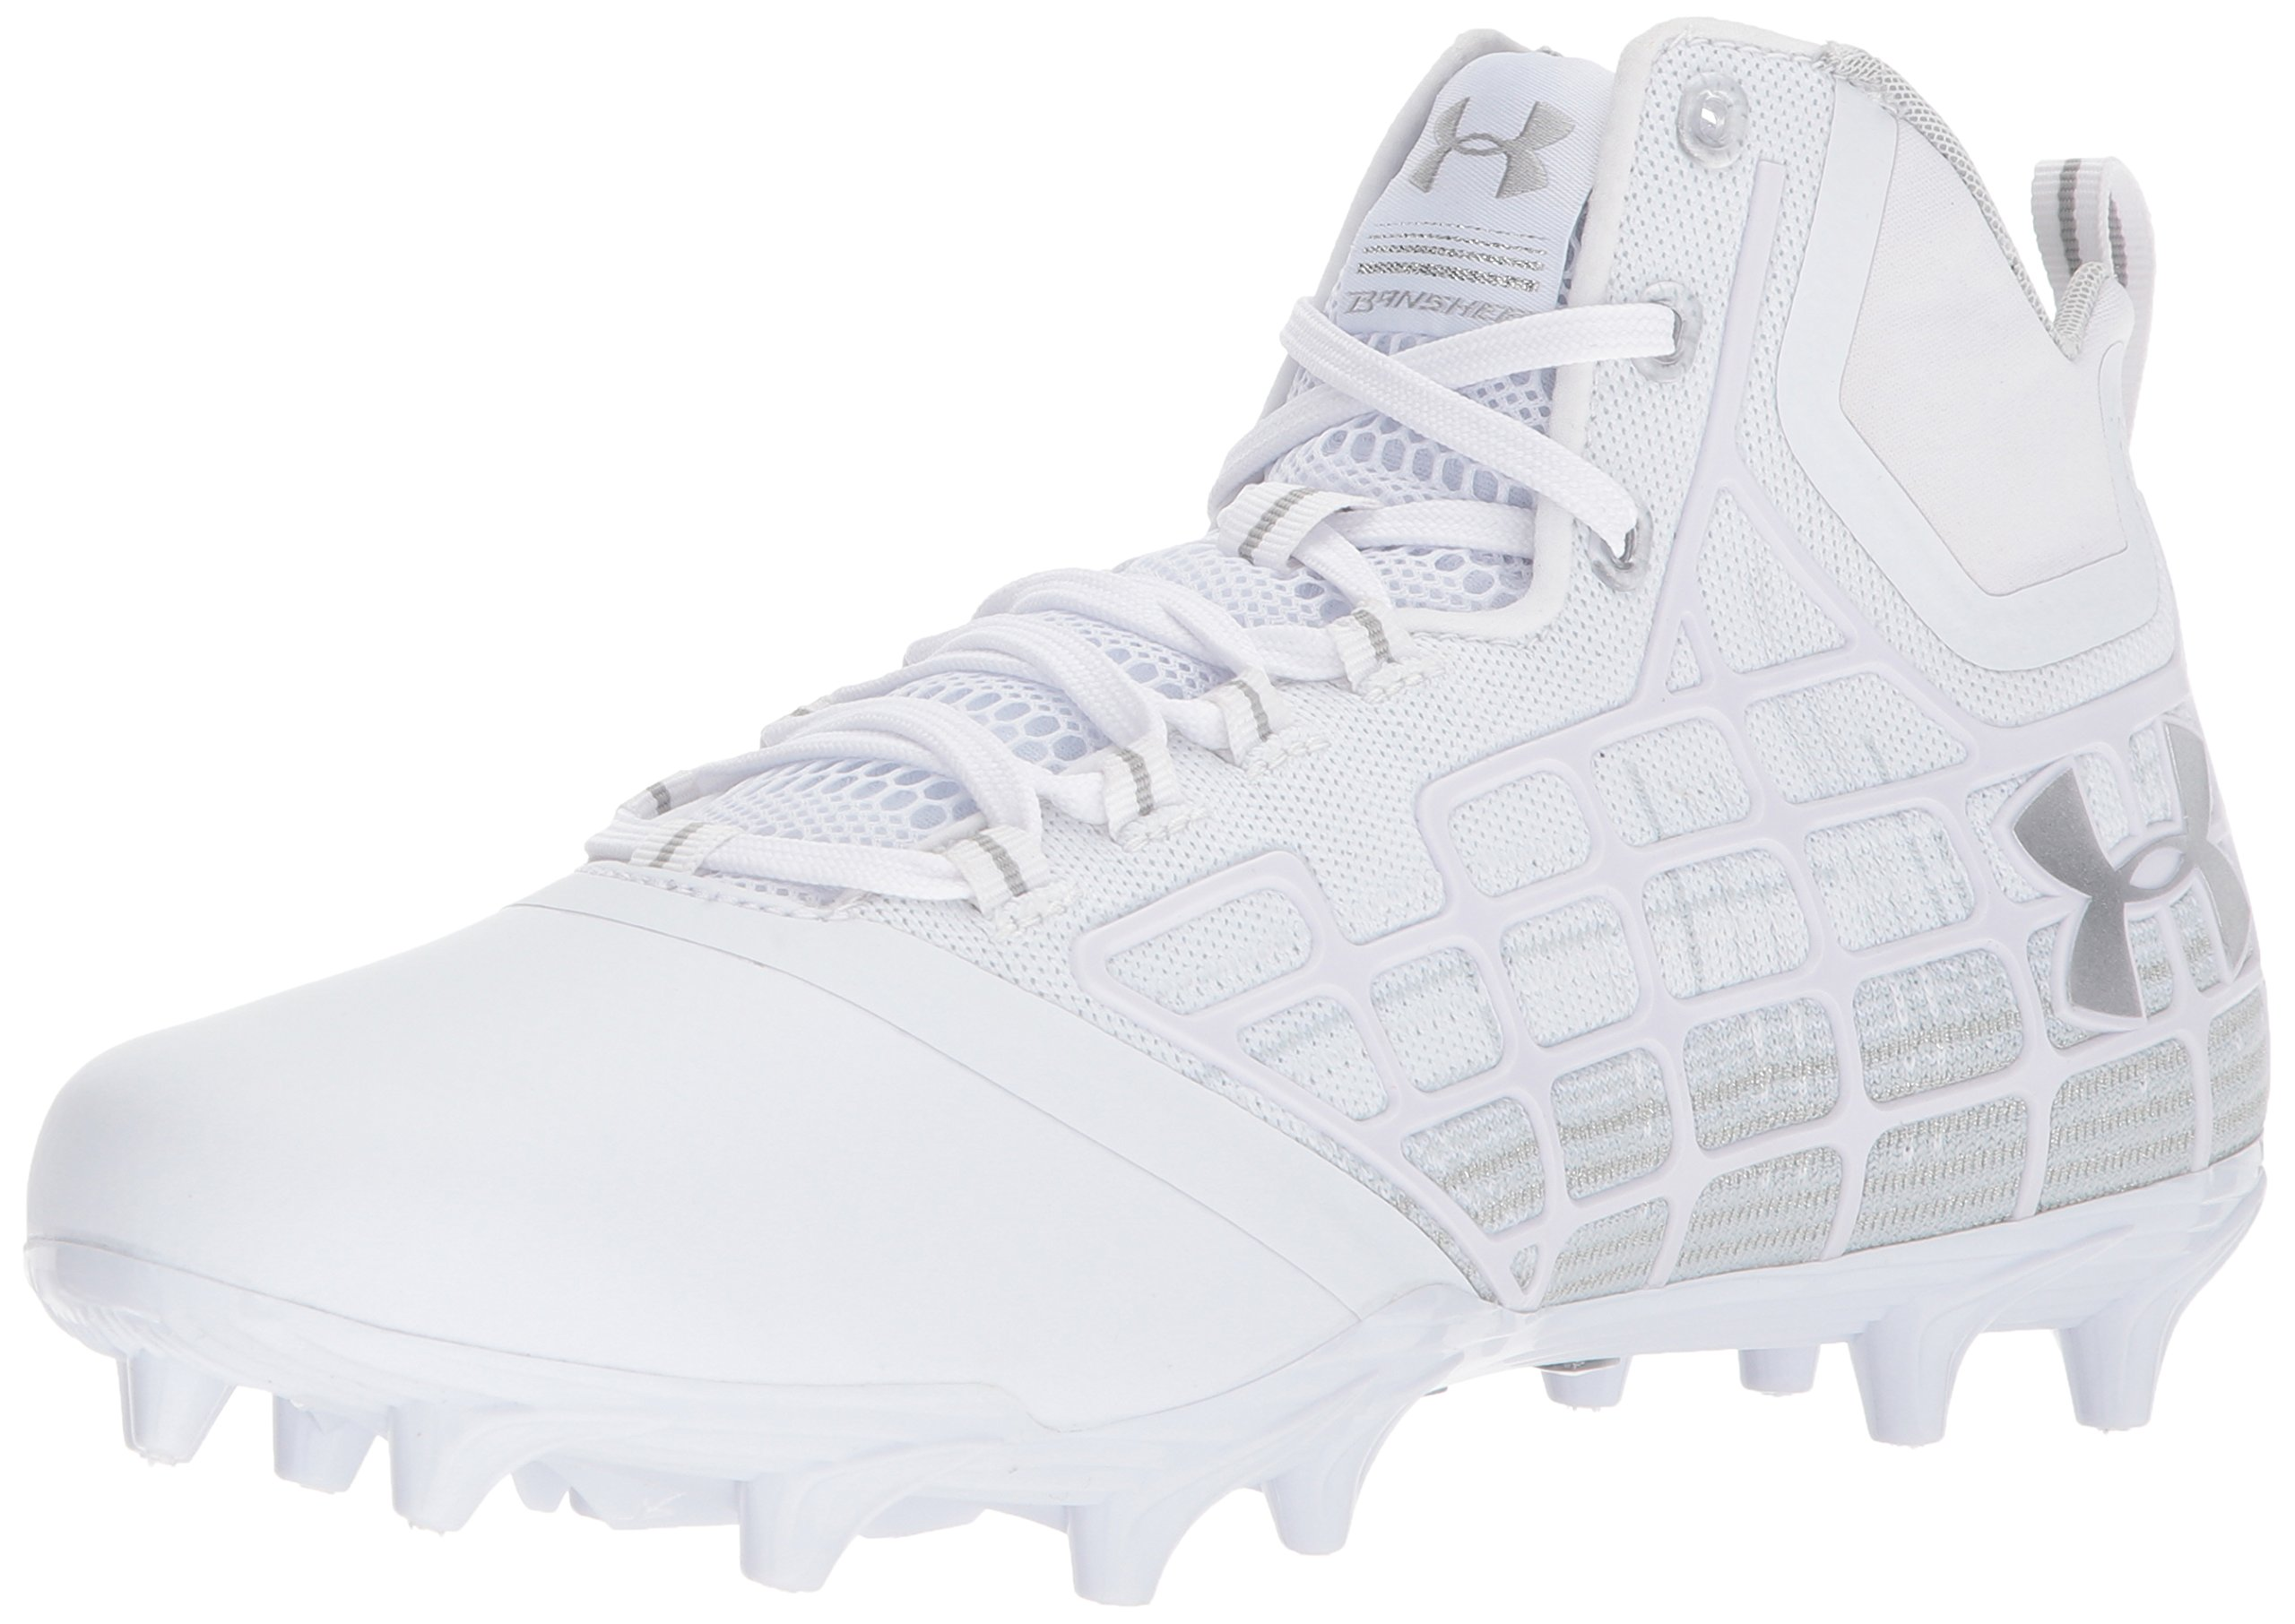 Under Armour Men's Banshee Mid MC Lacrosse Shoe, White (100)/Metallic Silver, 7.5 by Under Armour